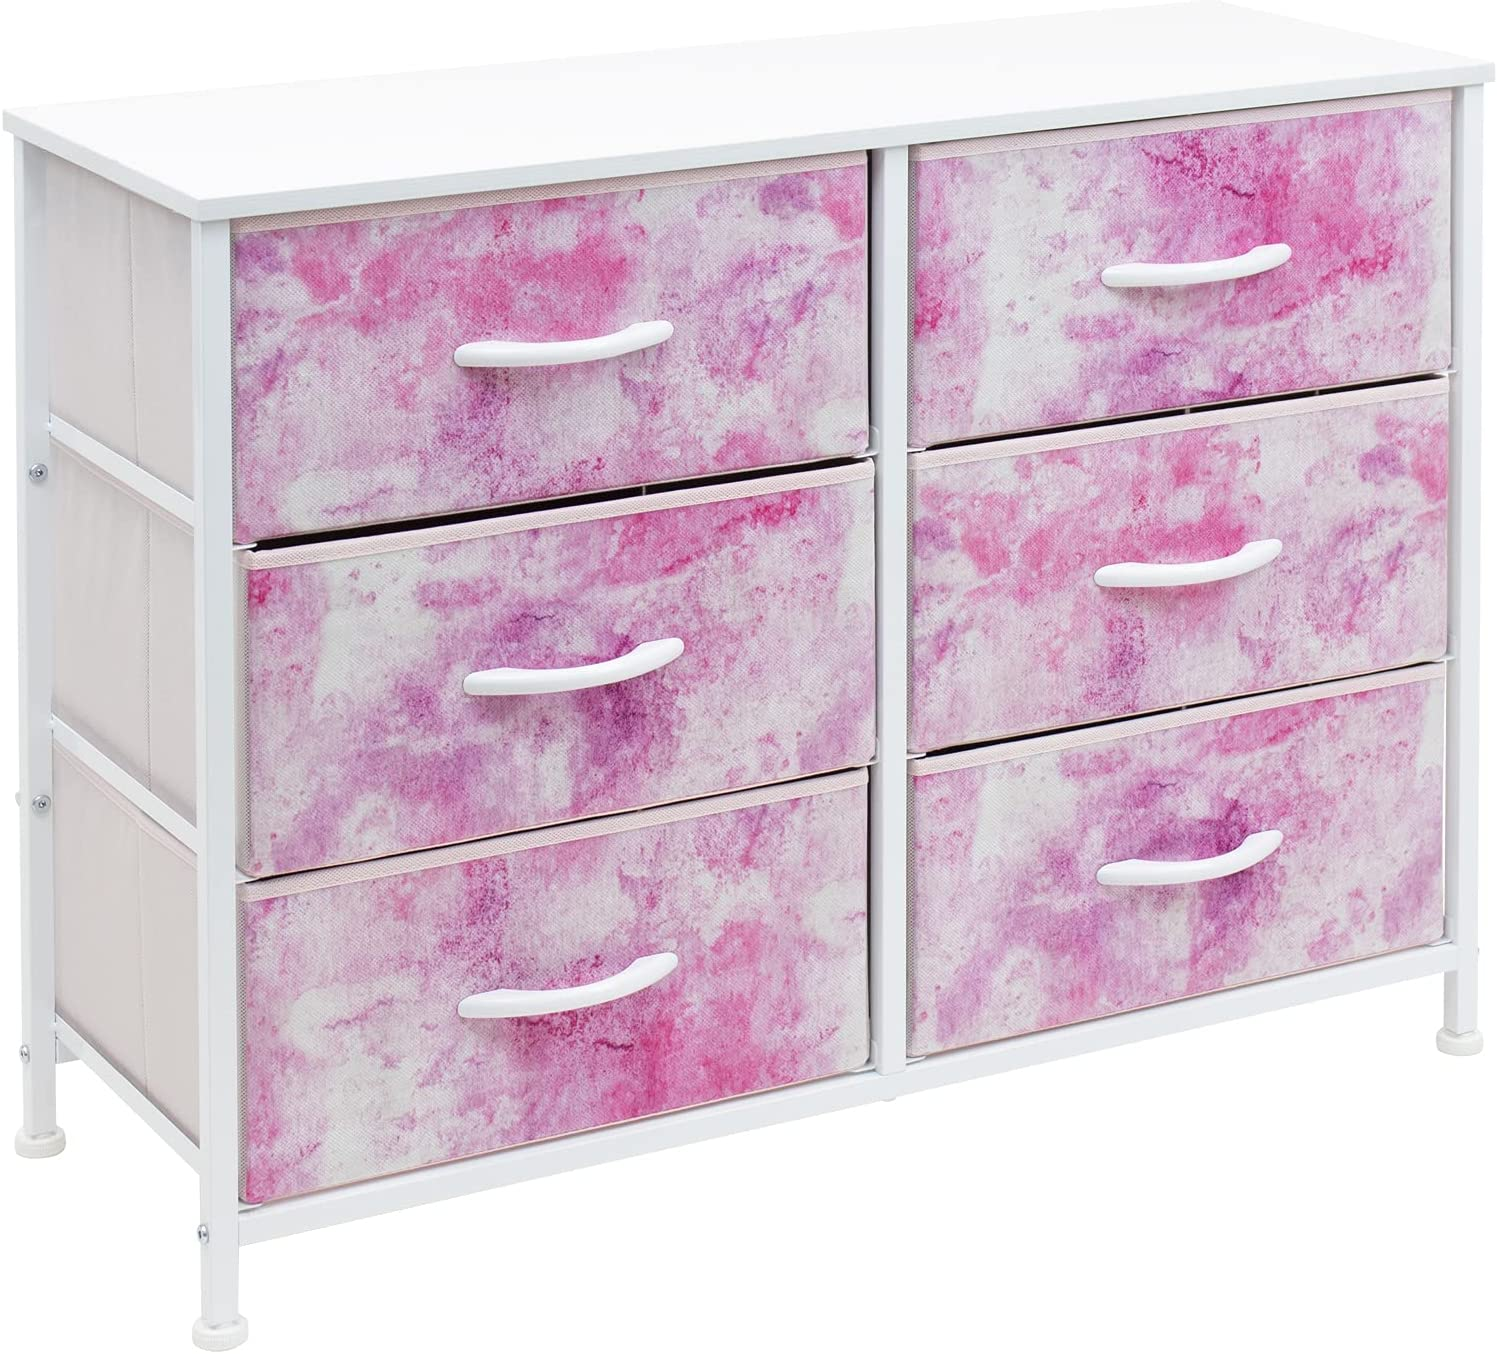 Sorbus Dresser with 6 Drawers - Furniture Storage Chest for Bedroom Tower Unit Furniture, Hallway, Closet, Office Organization - Steel Frame, Wood Top, Tie-dye Fabric Bins (6-Drawer, Pink)